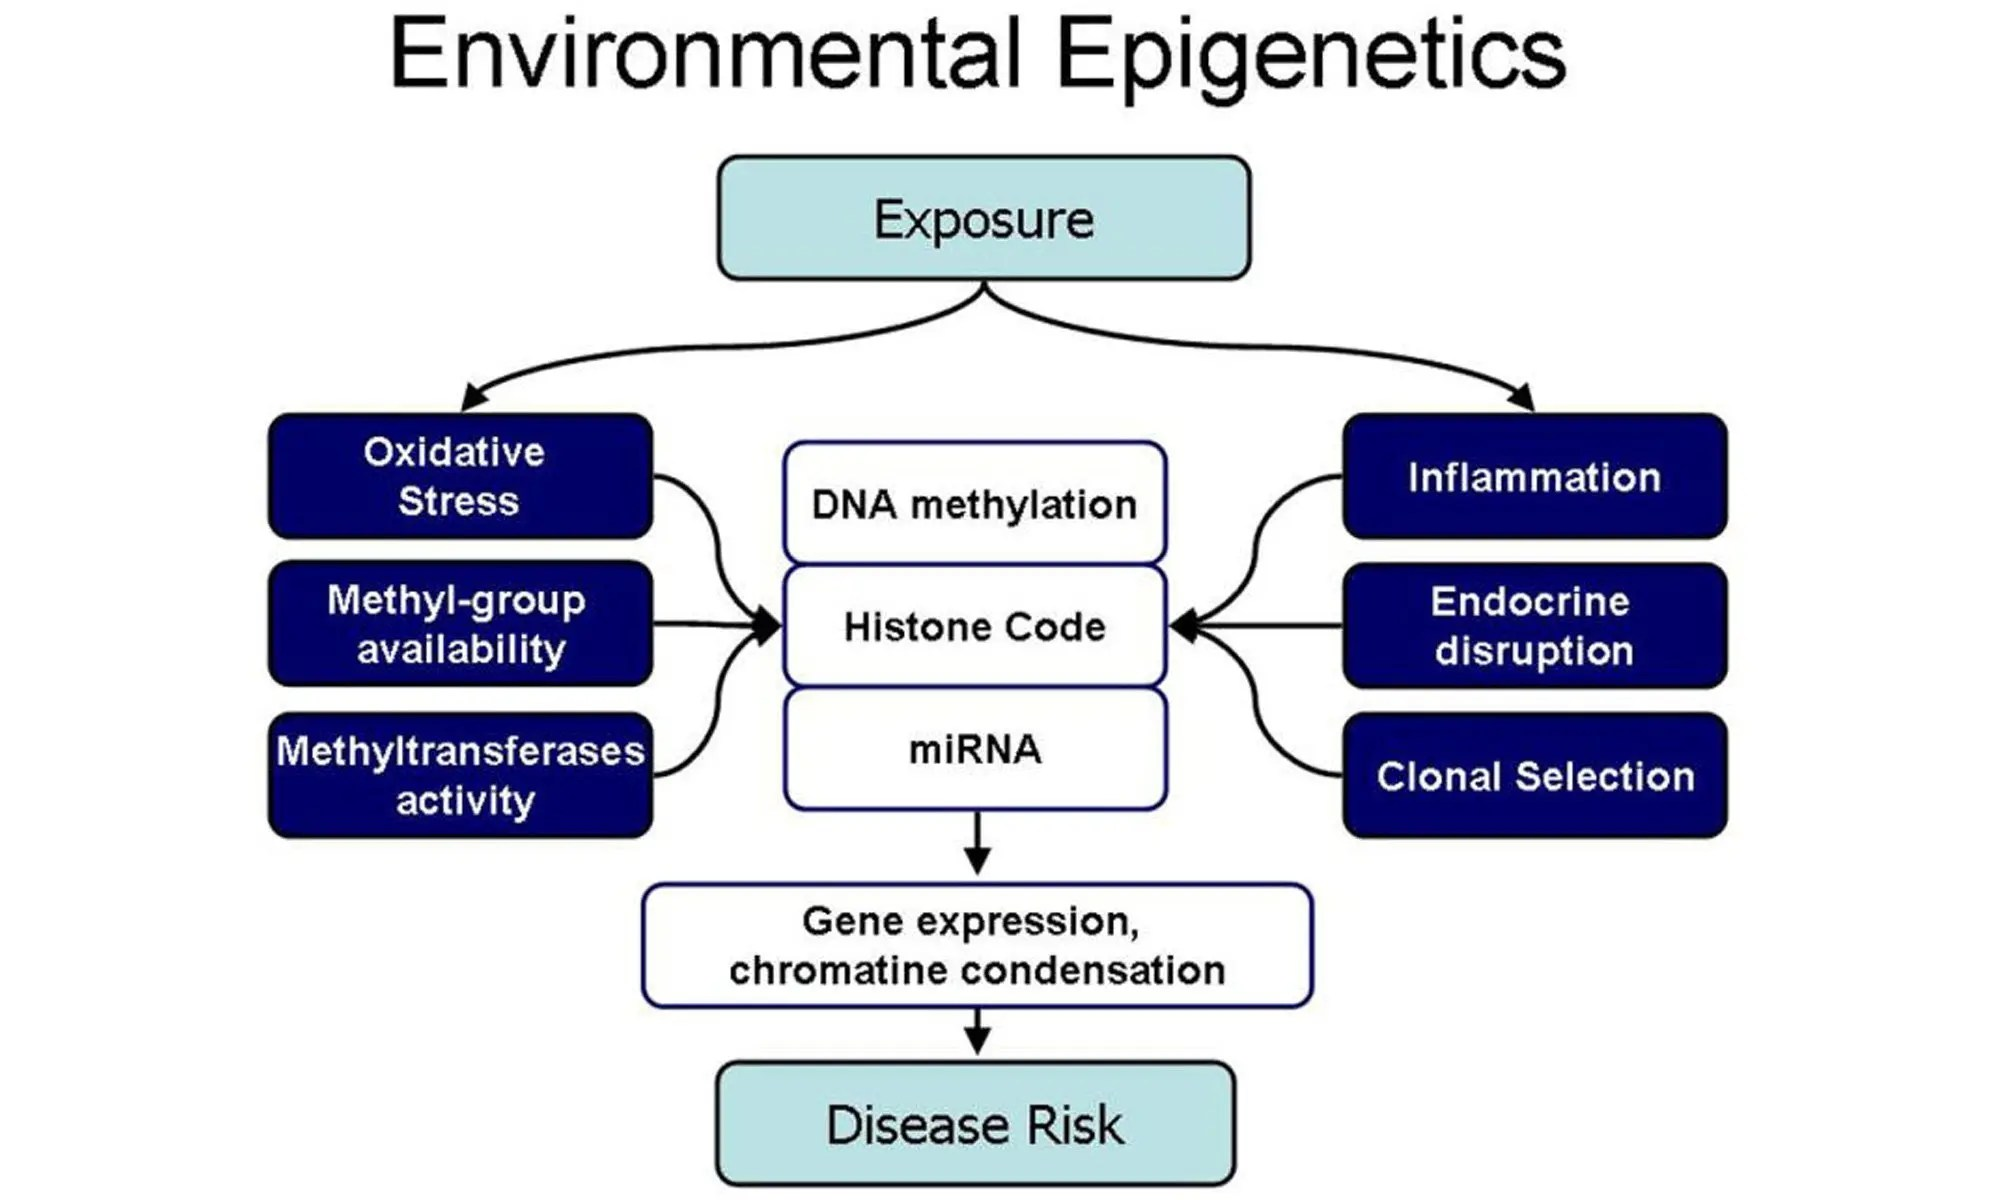 image of Potential mechanisms linking environmental exposures to epigenetic effects